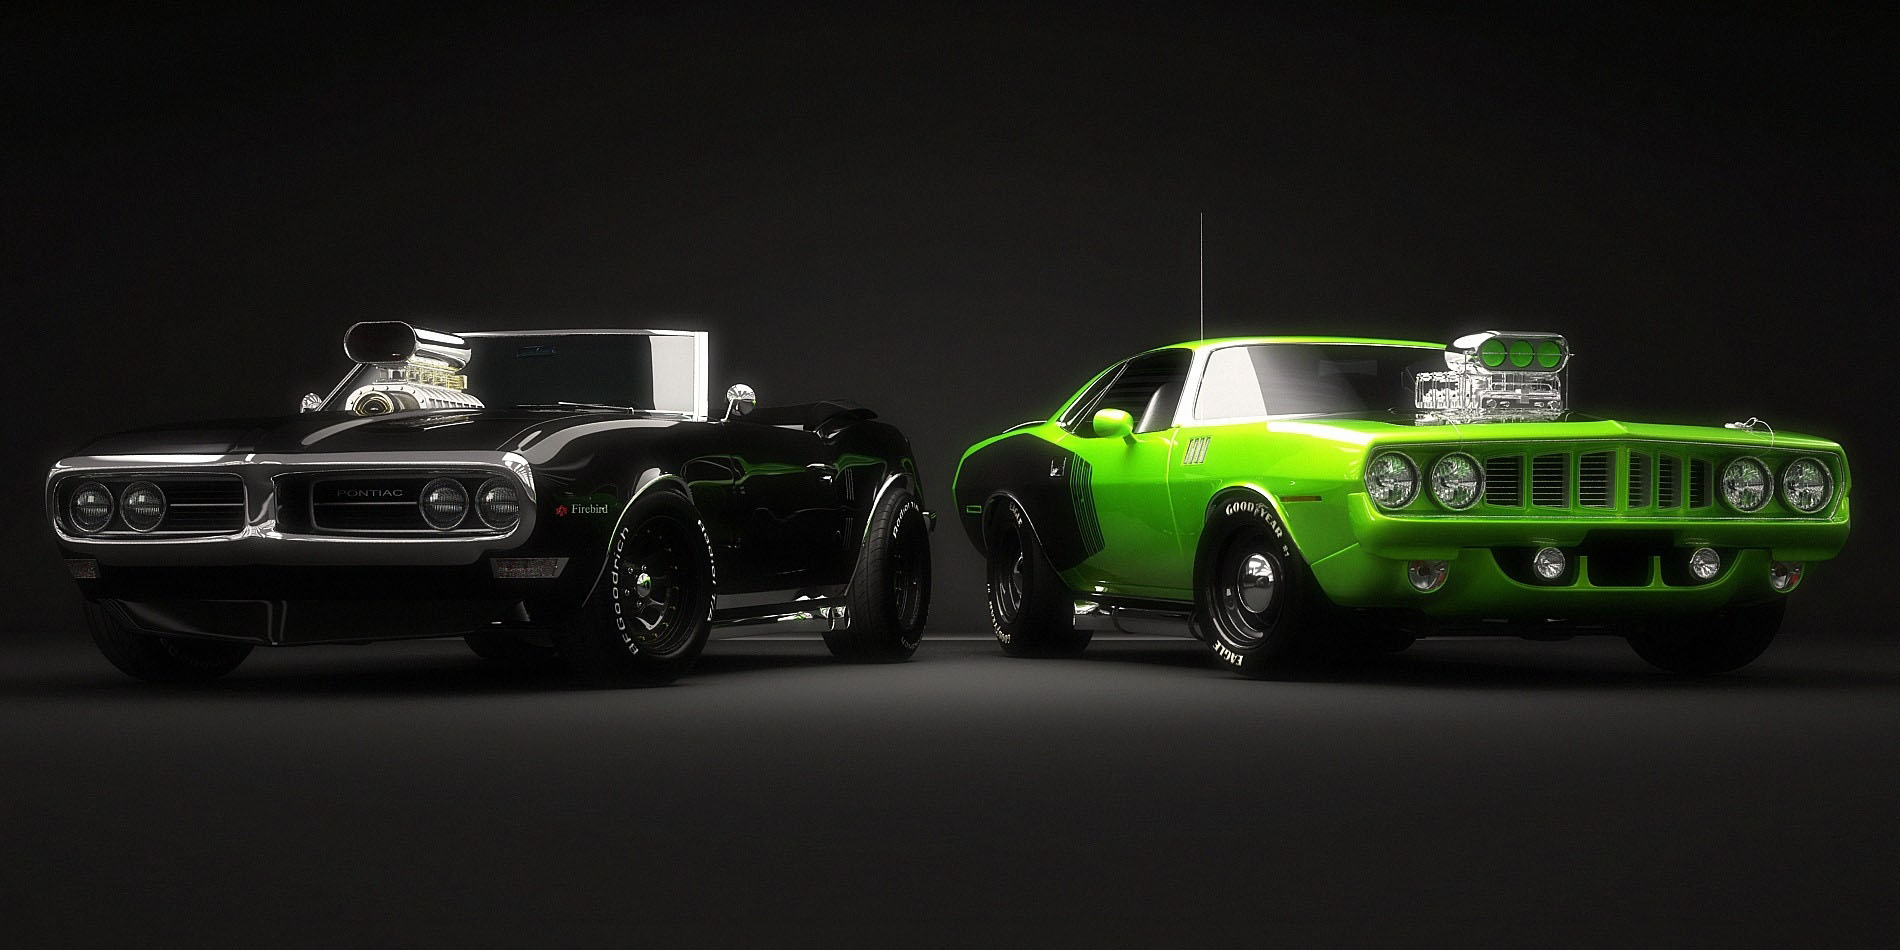 Green Spots Car With Girls Hd Wallpaper: Muscle Fond D'écran Voiture HD